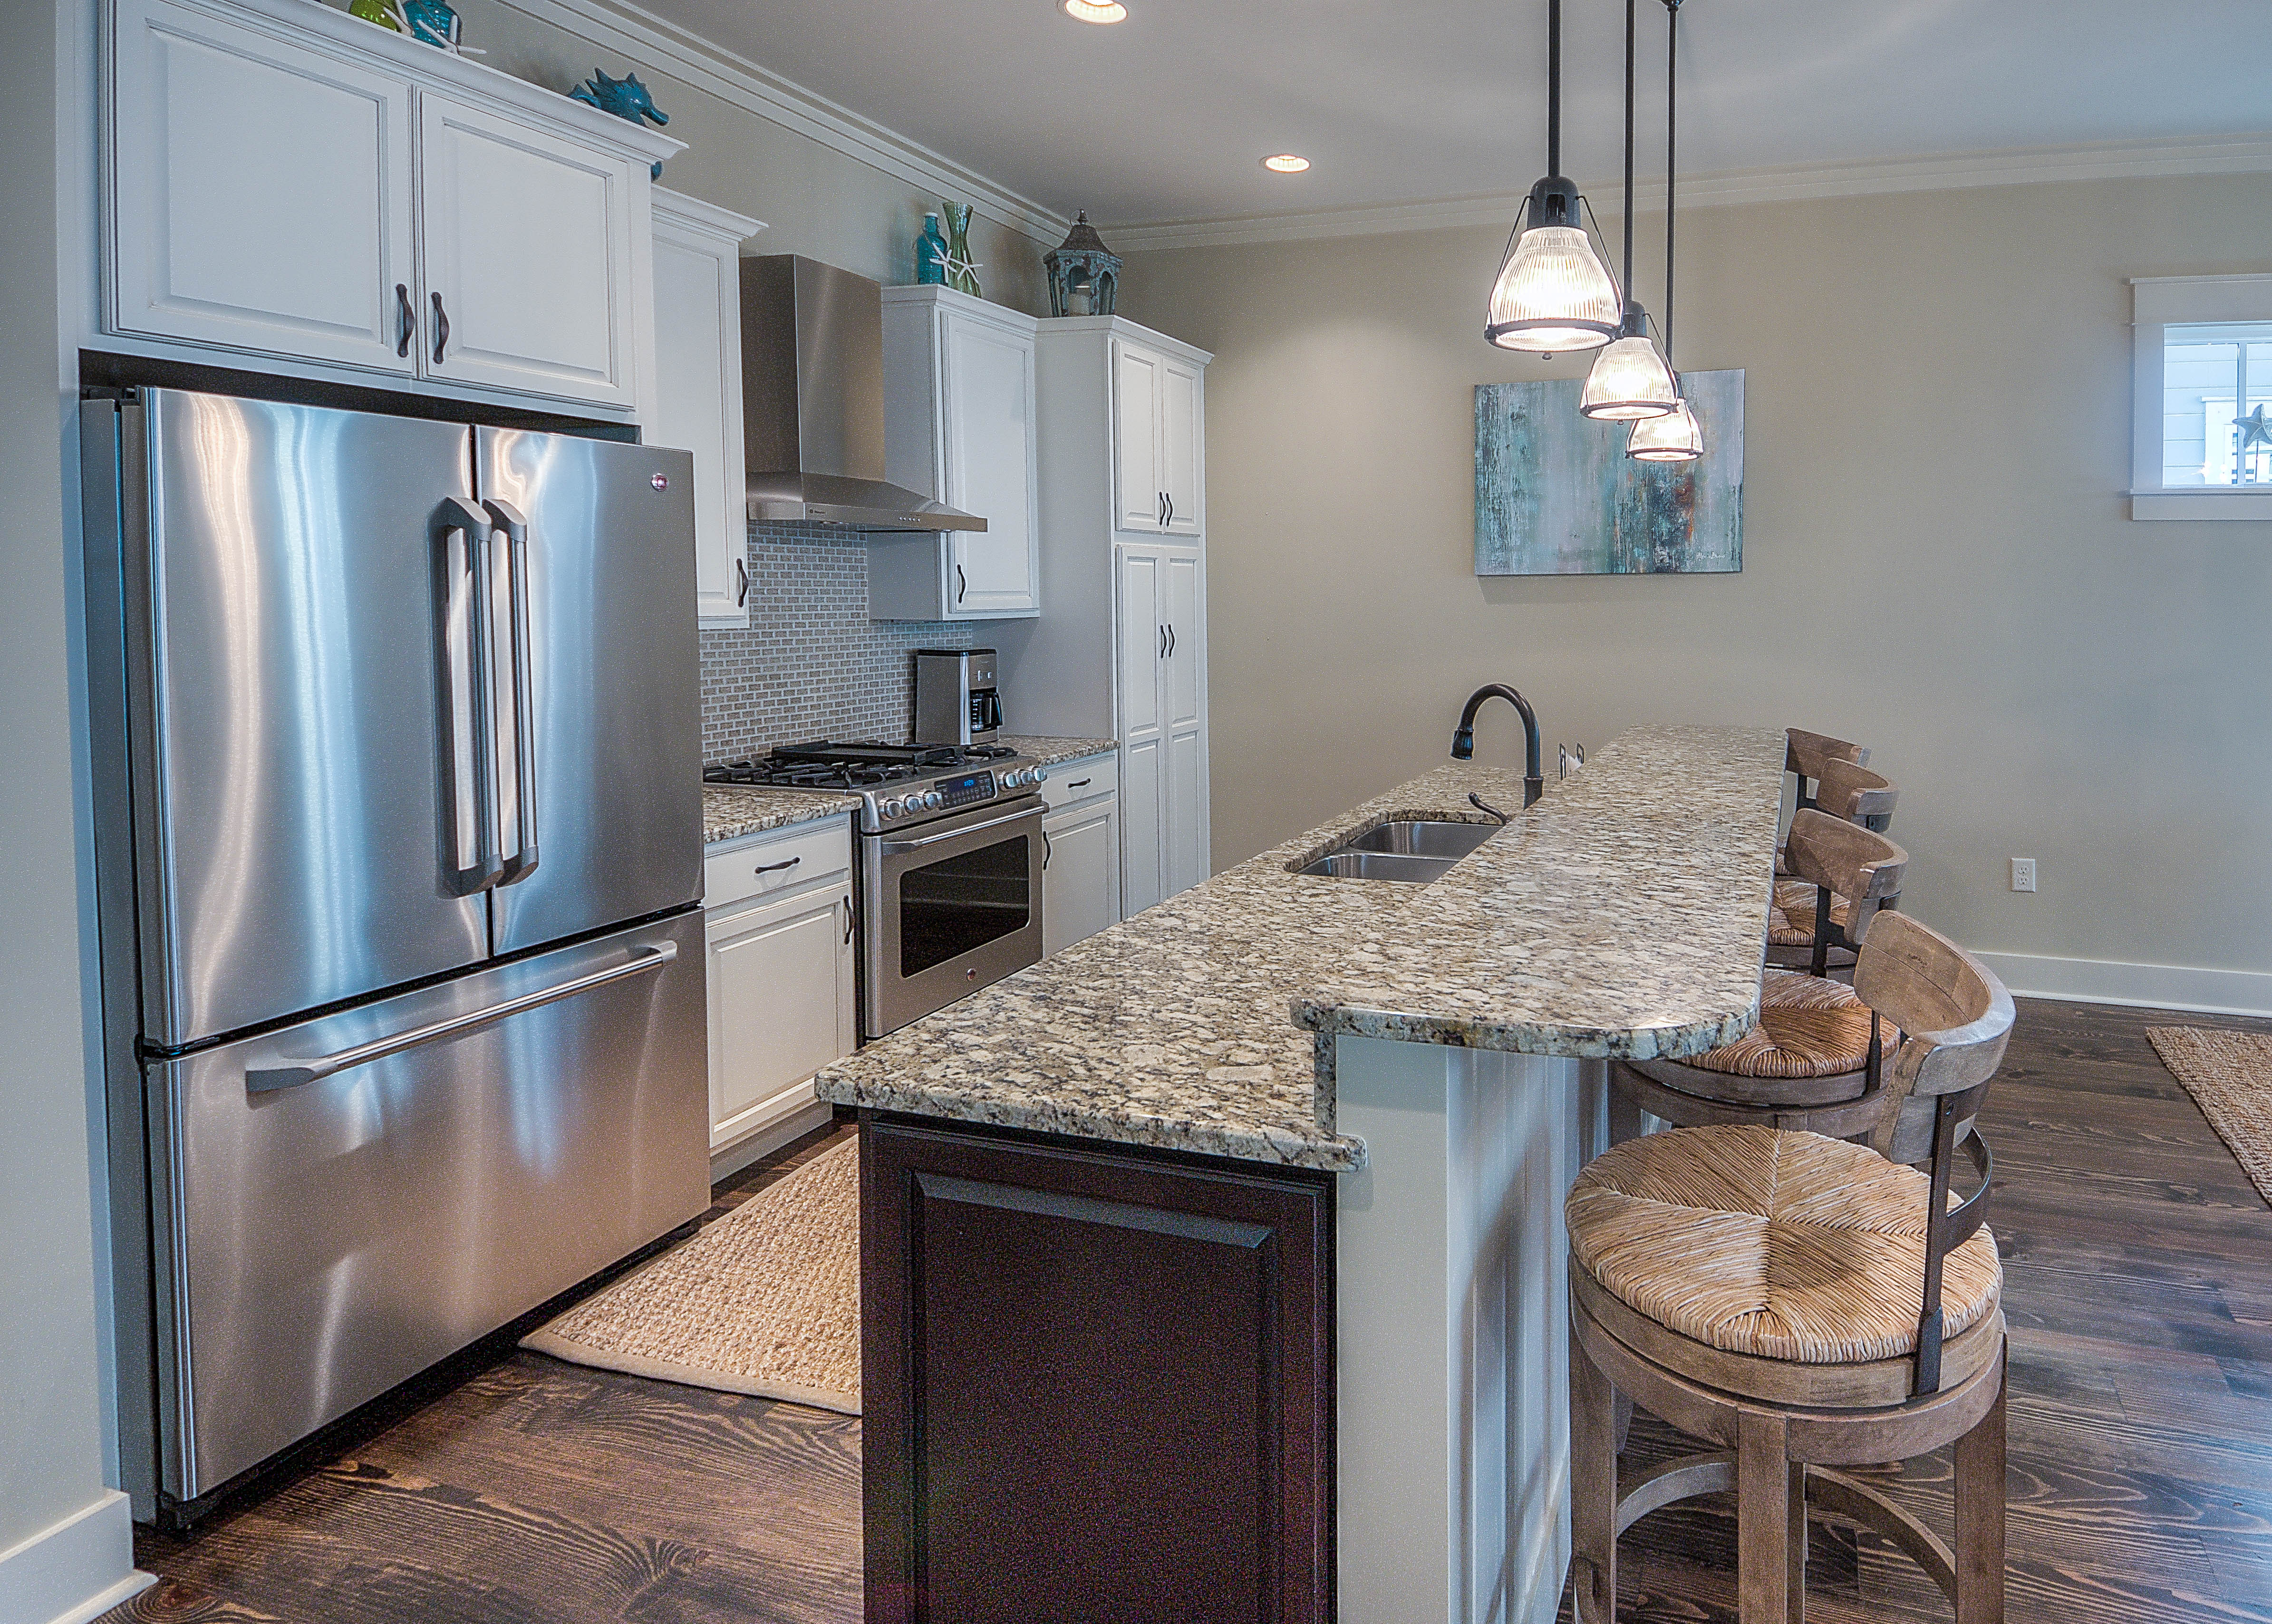 Open kitchen with stainless steel appliances, granite countertops and gas range